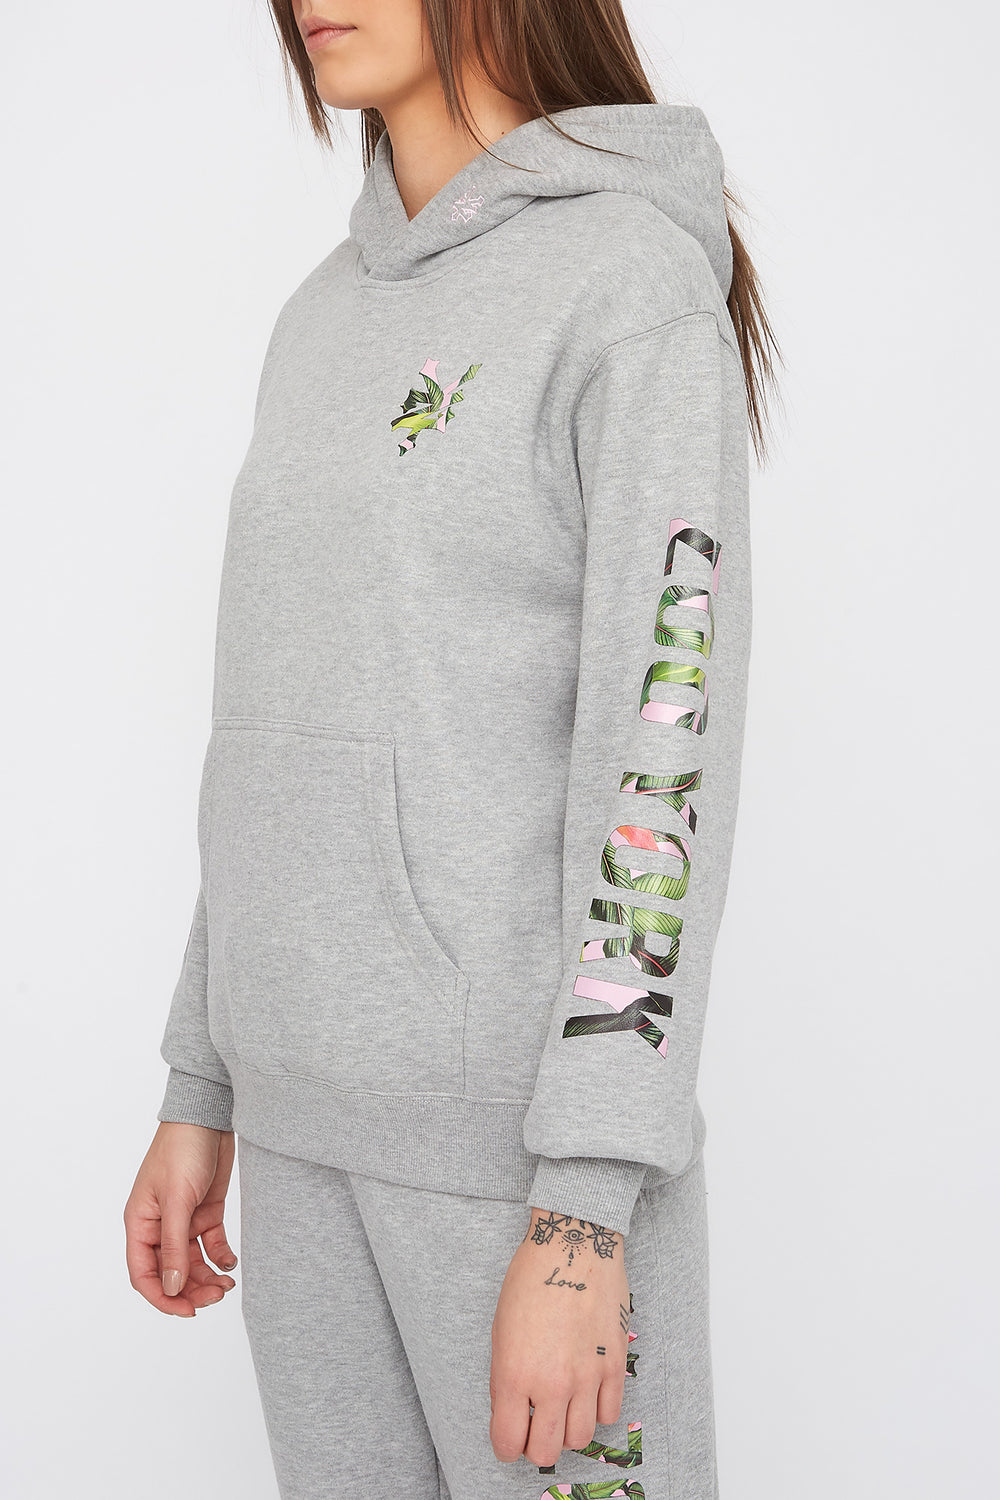 Zoo York Womens Tropical Logo Hoodie Heather Grey